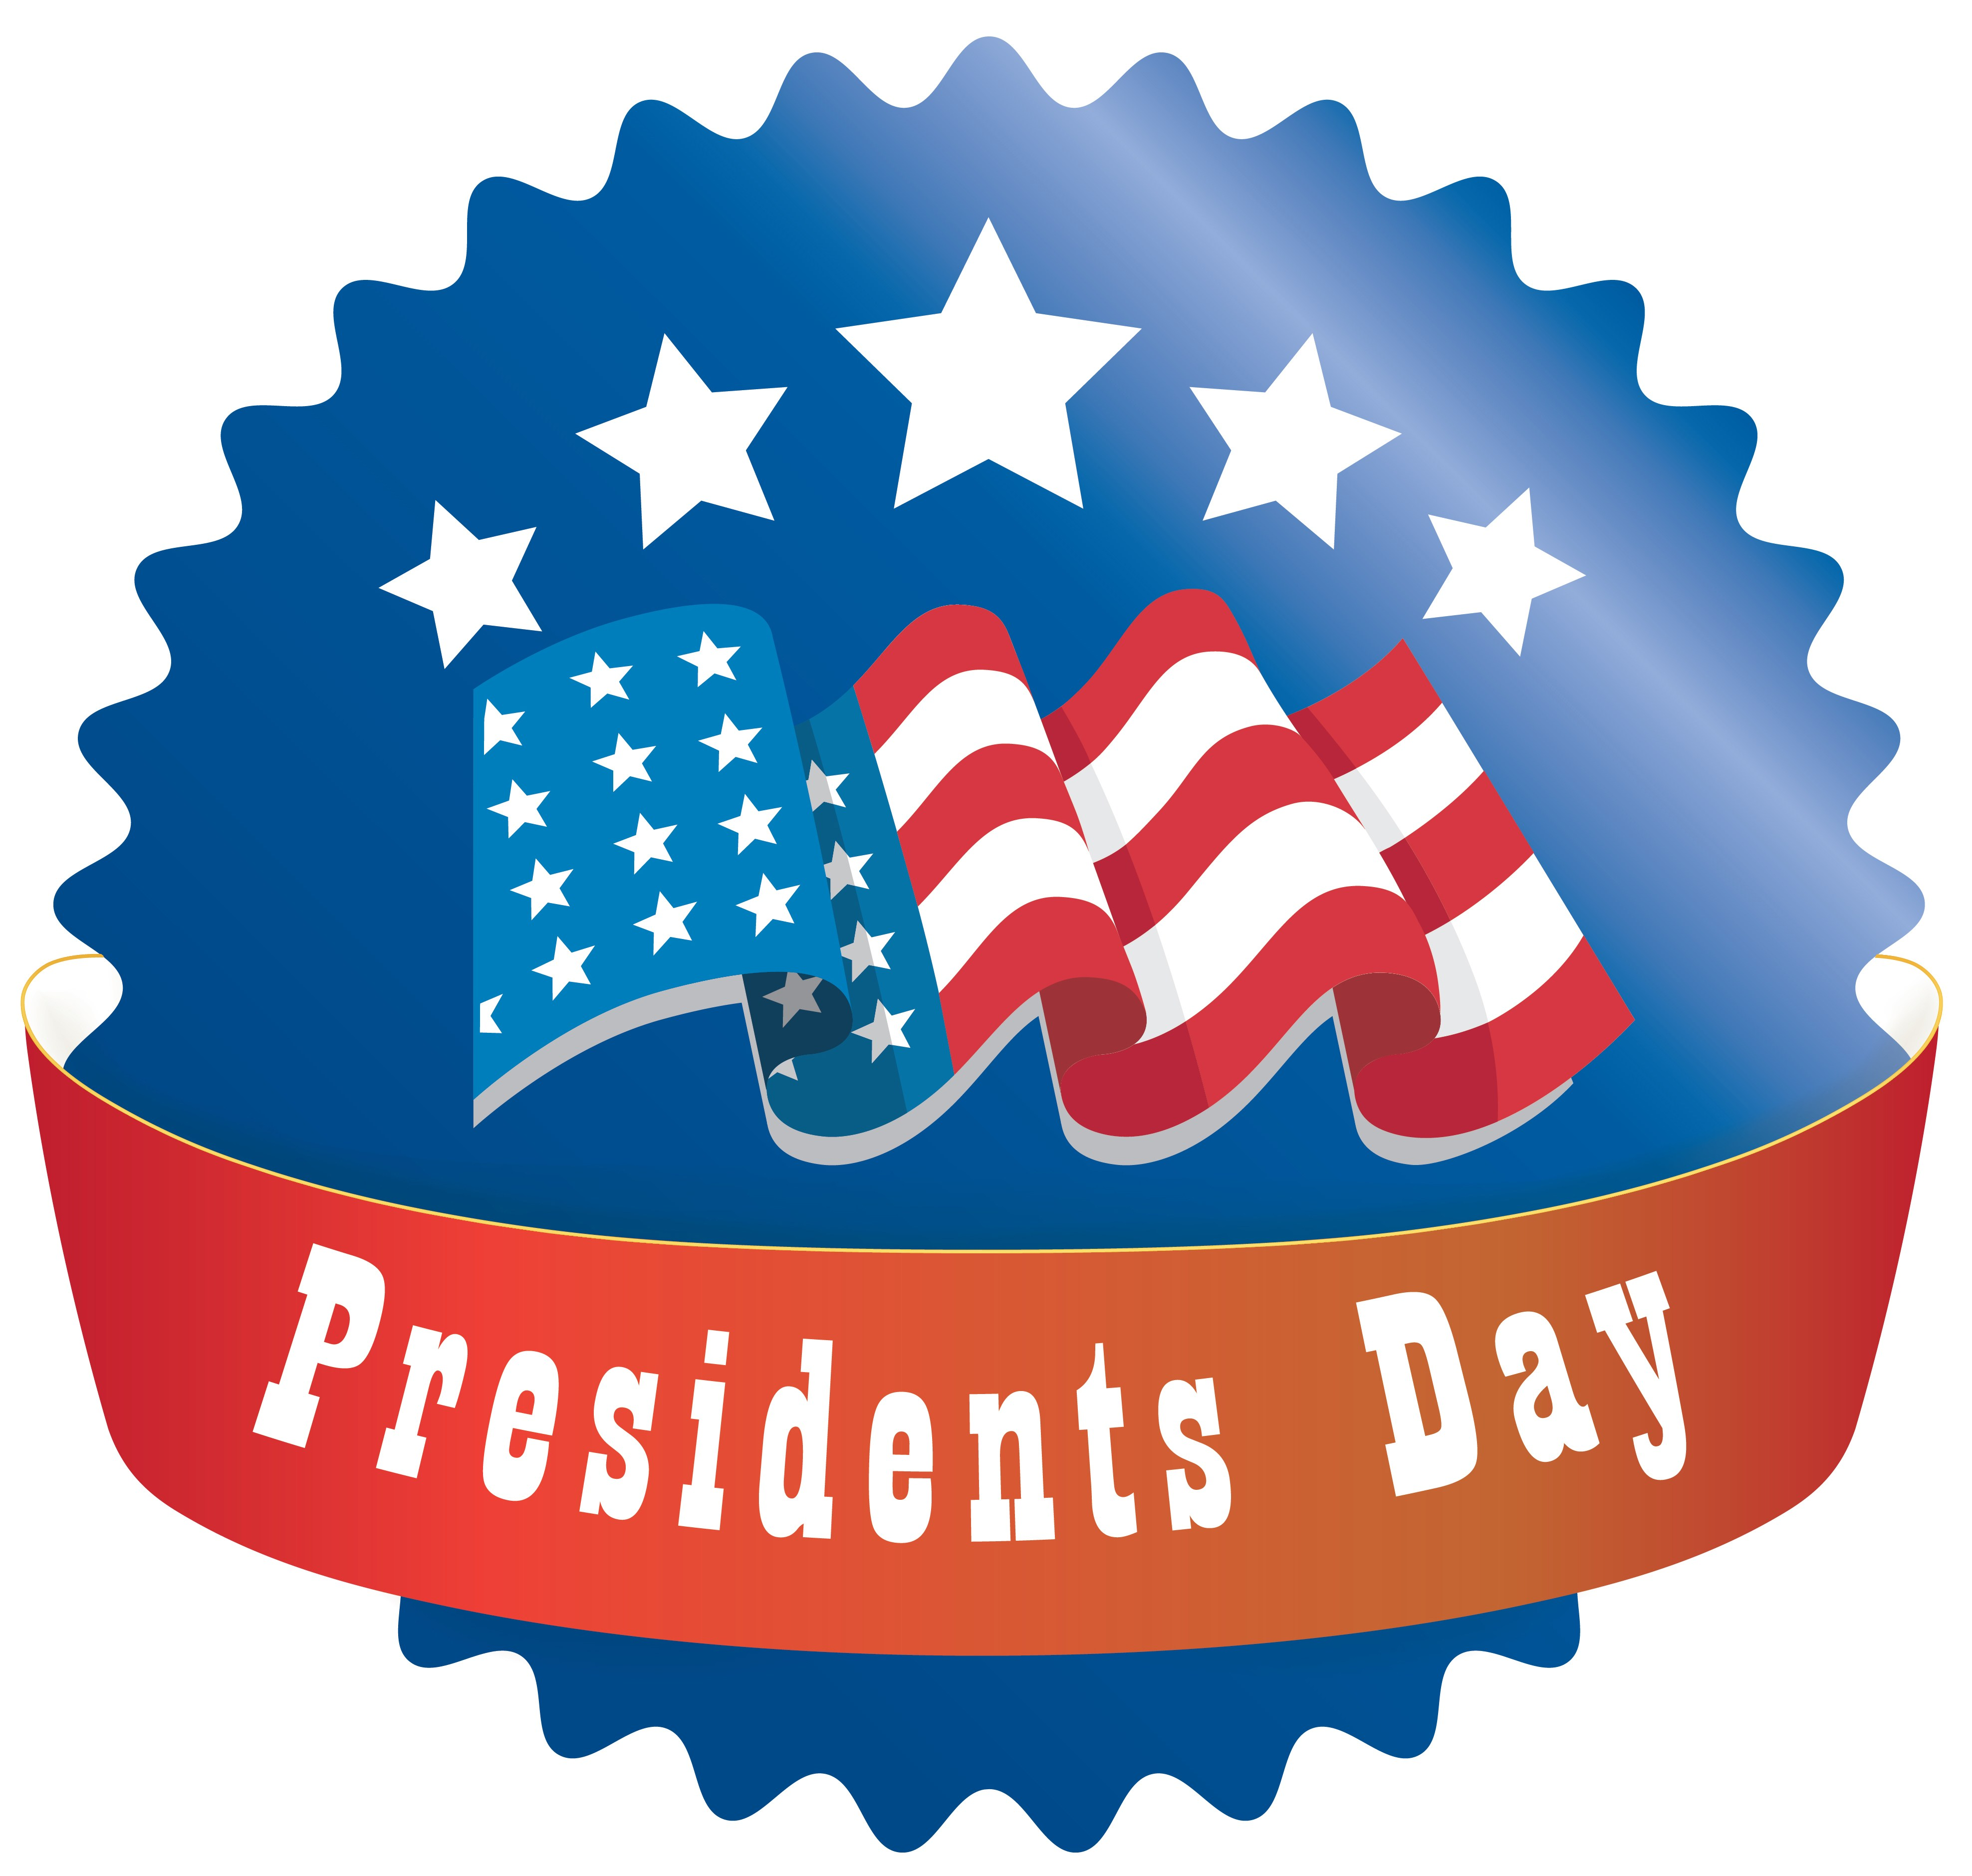 Station . 2018 clipart presidents day